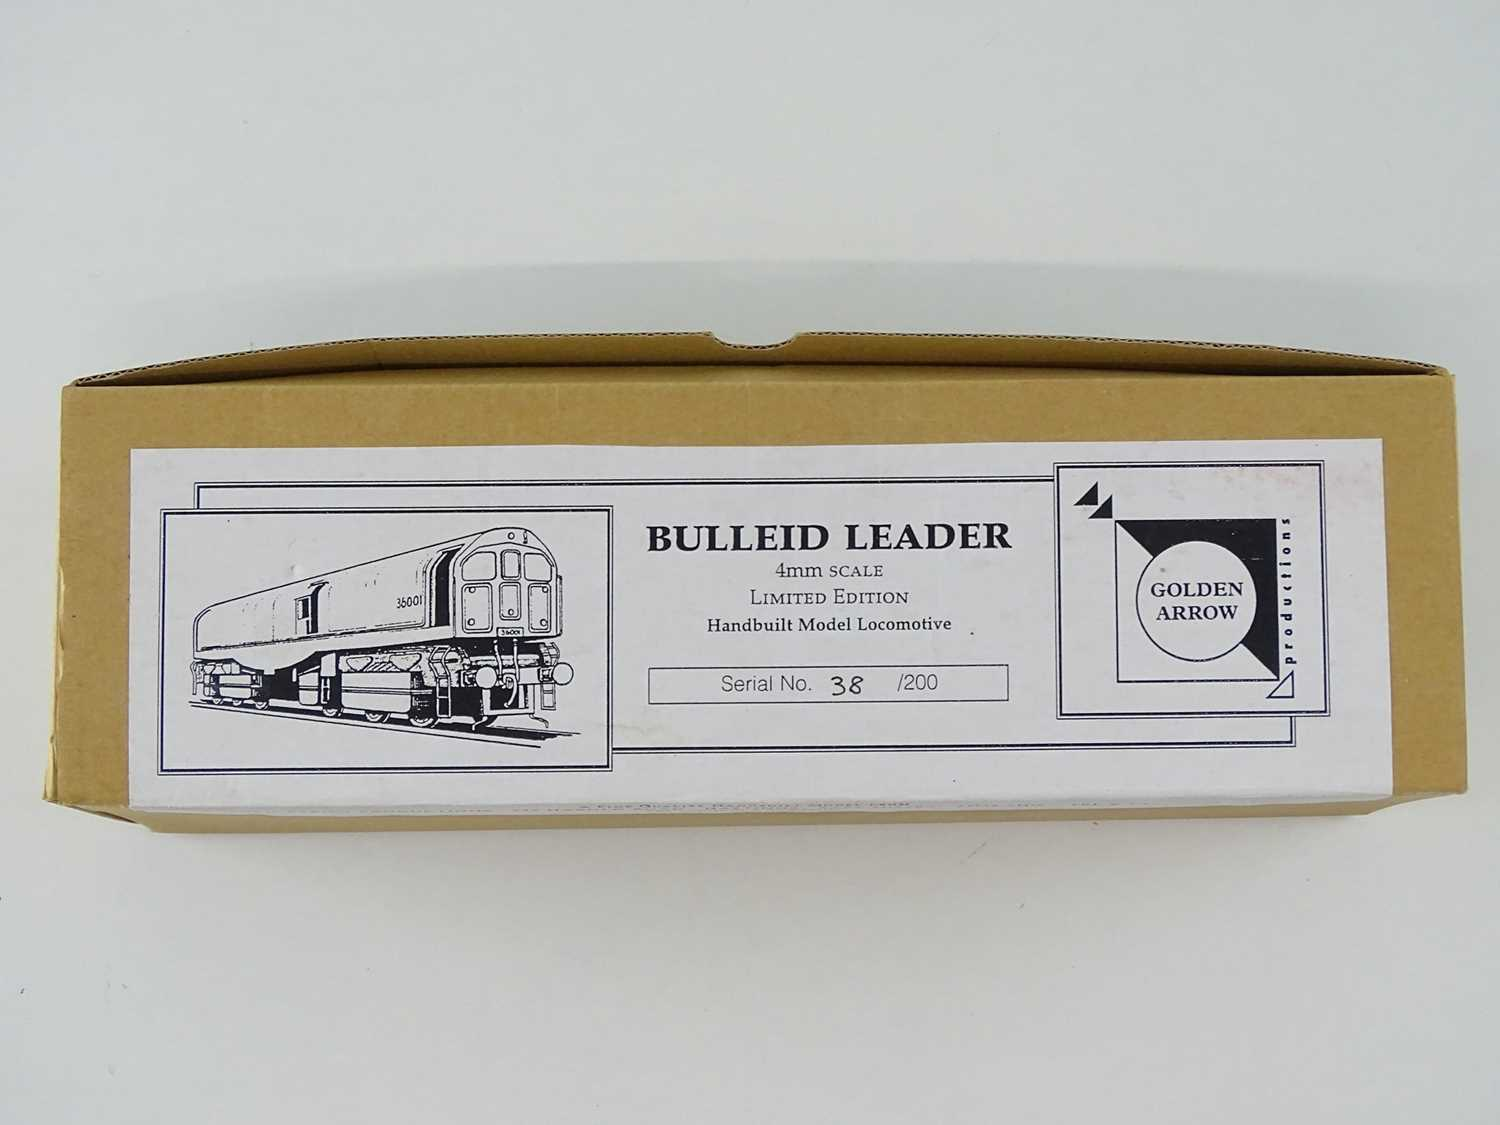 A GOLDEN ARROW PRODUCTIONS OO Gauge hand built limited edition - 38/200 - Bulleid Leader - Image 3 of 4